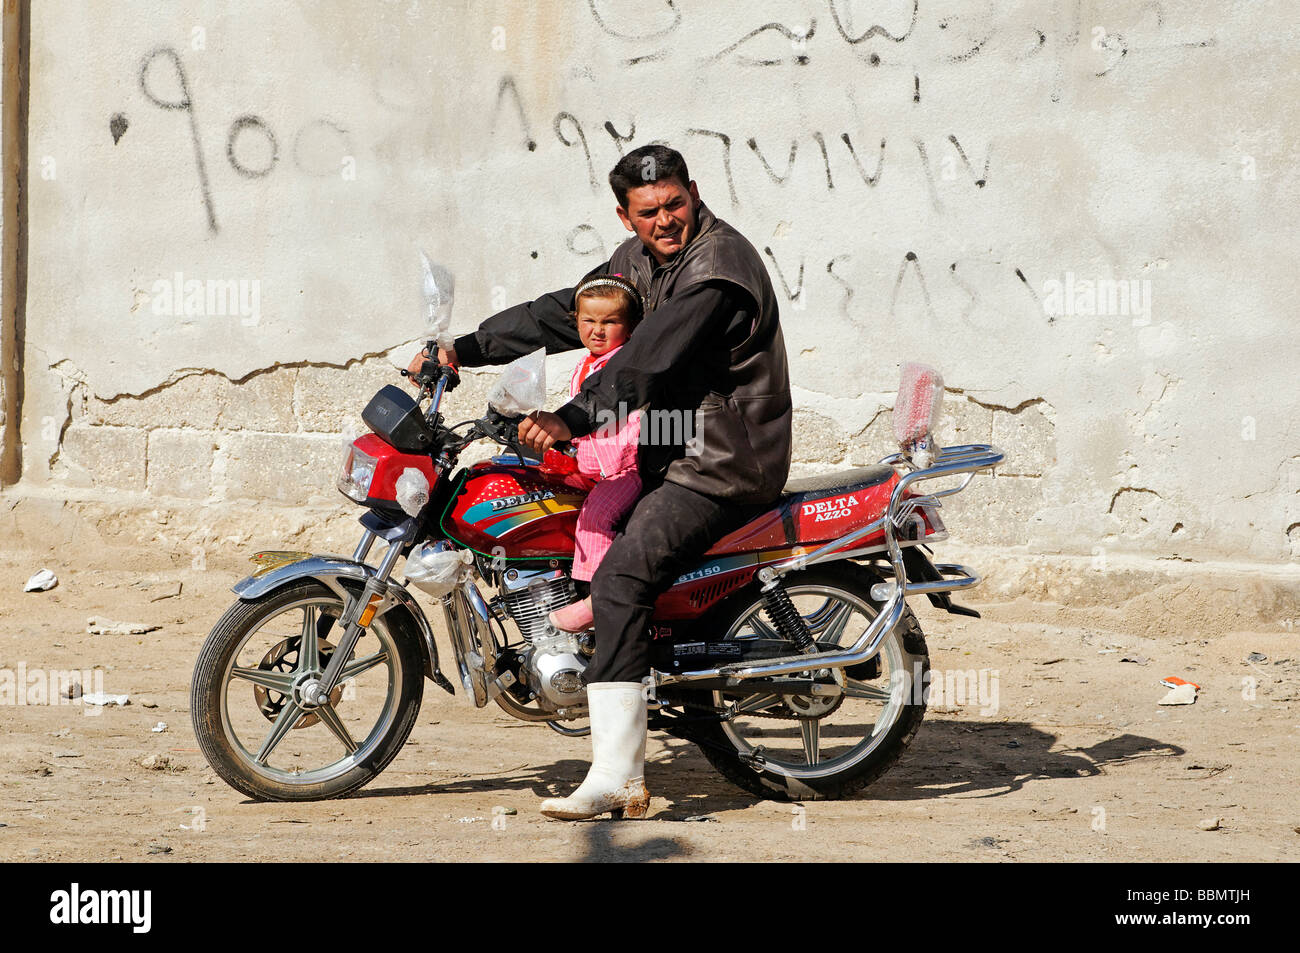 Man with child on motorbike in Aleppo, Syria, Asia - Stock Image